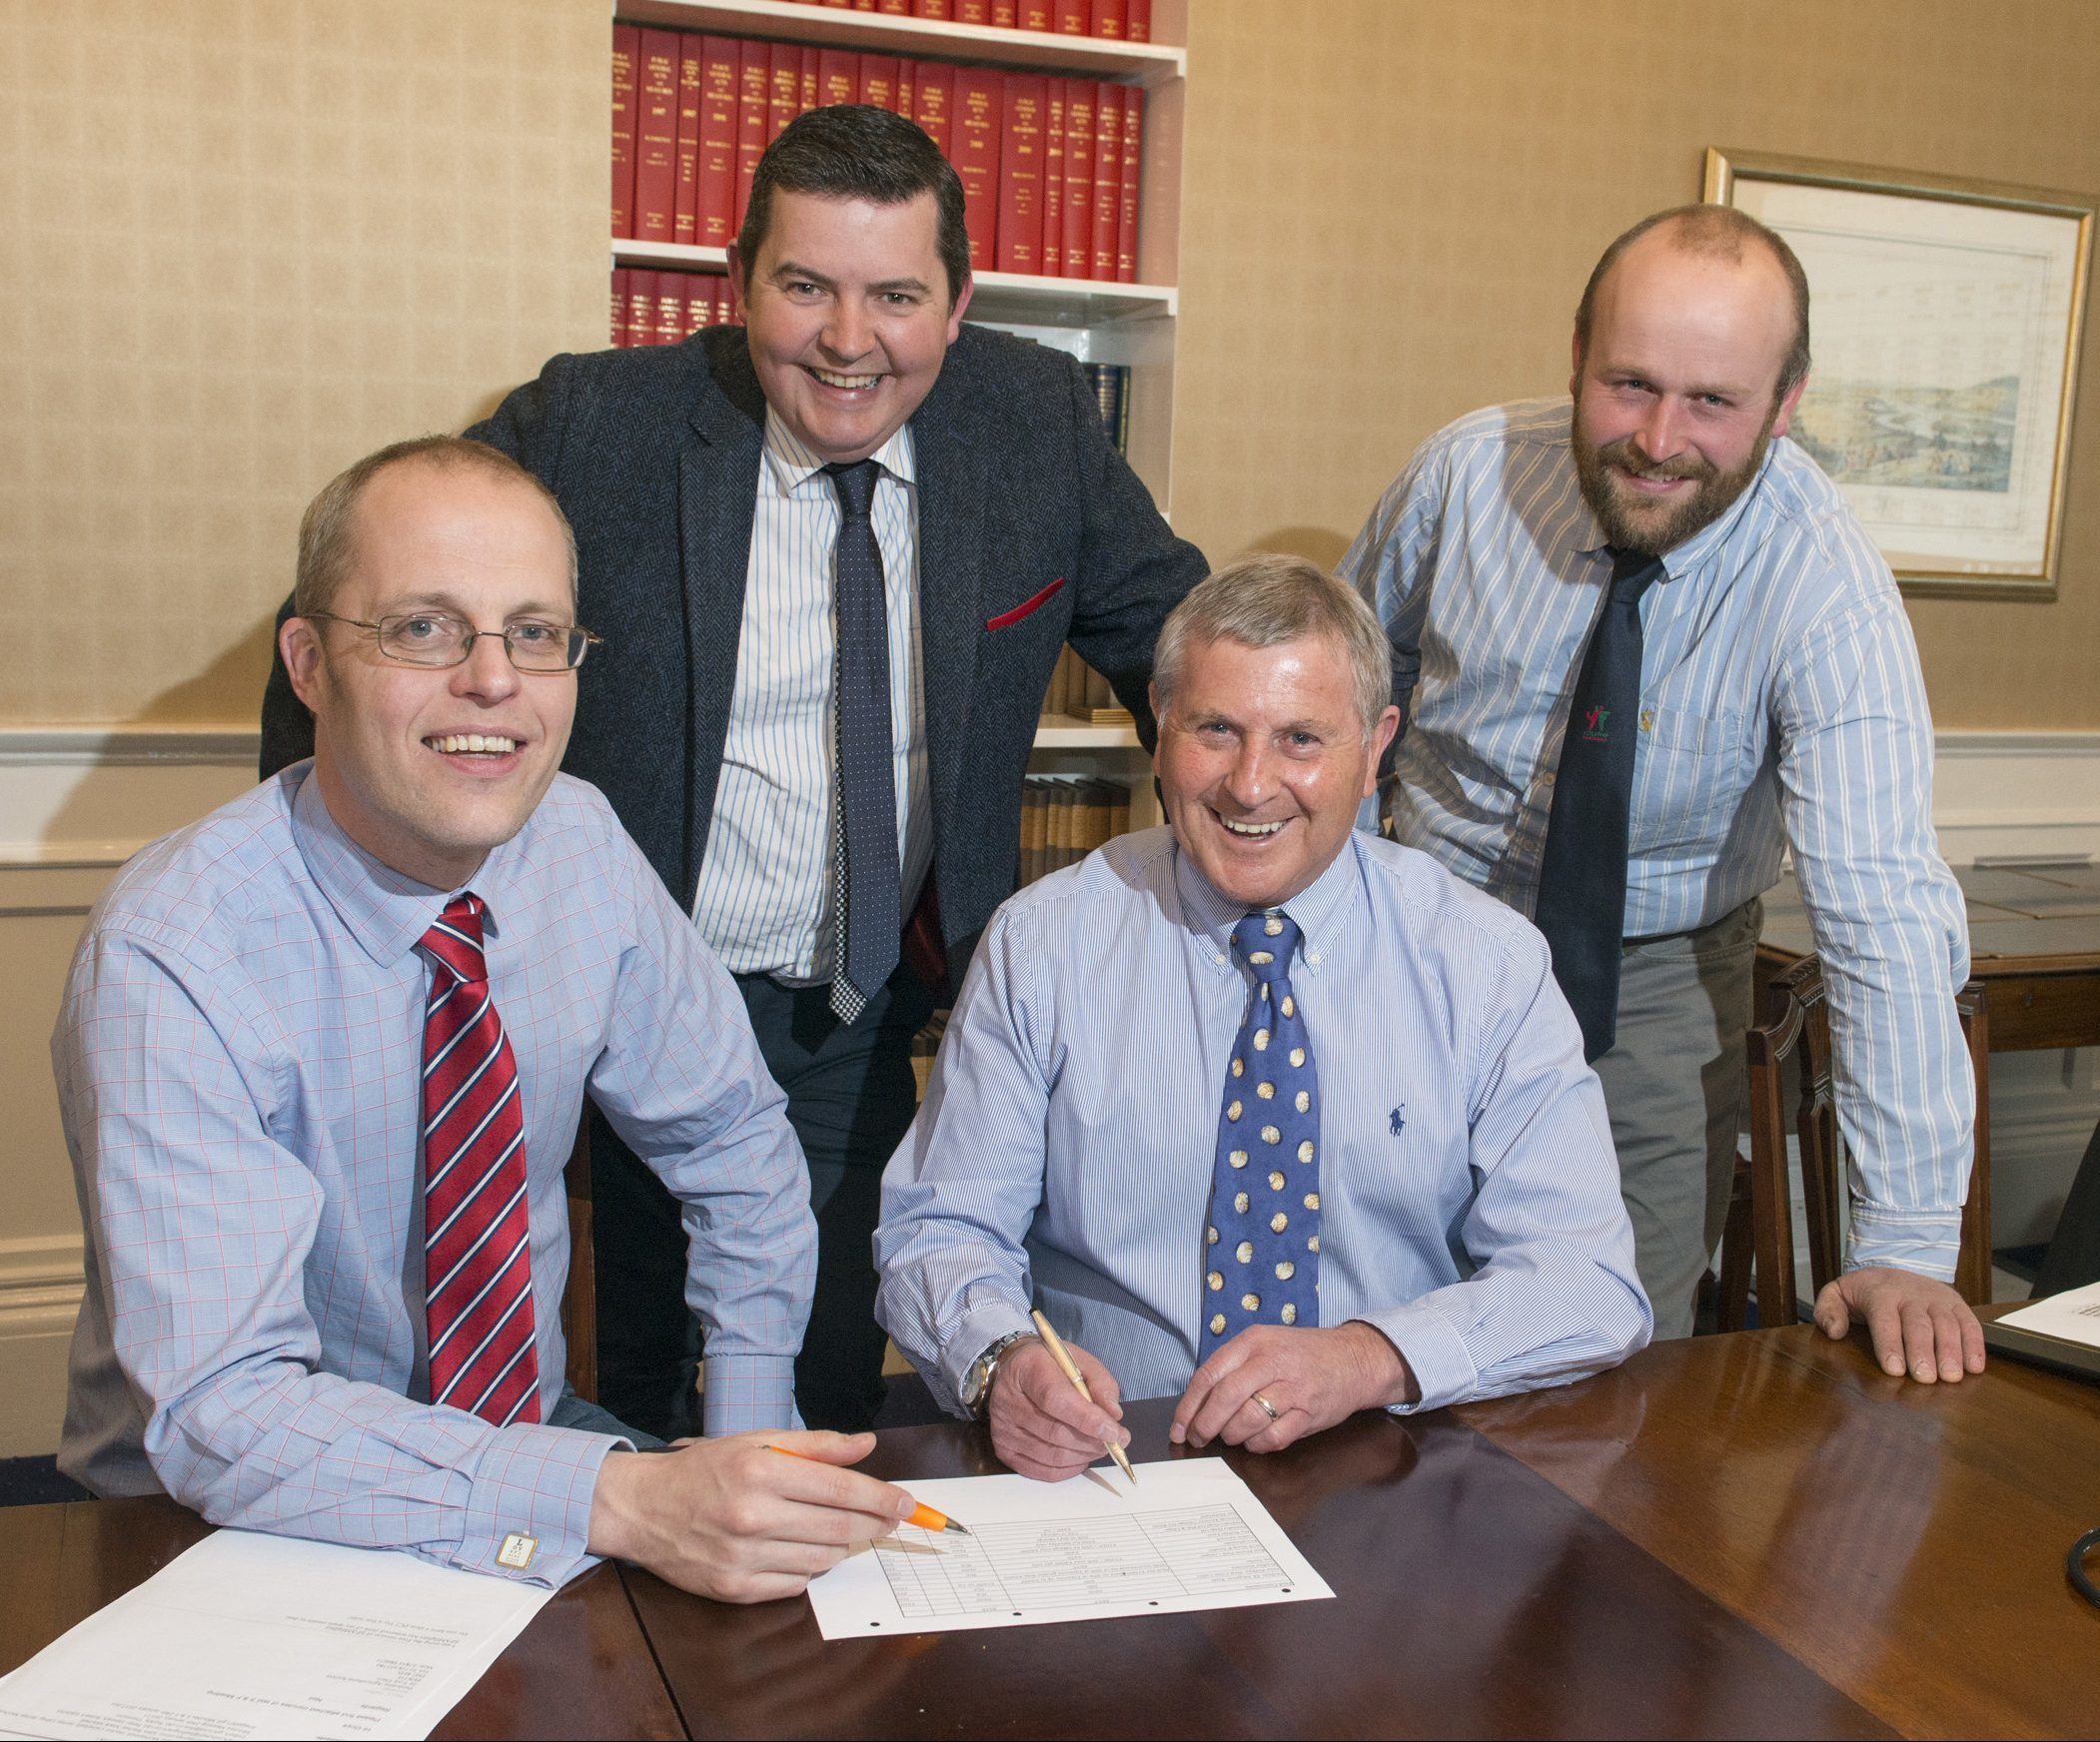 Perthshire Agricultural Society's new chairman Peter Stewart (seated left) with his senior team for 2017 – vice chairman John Ritchie (standing right), junior vice chairman Donald McDiarmid (standing left) and secretary Neil Forbes (seated right).